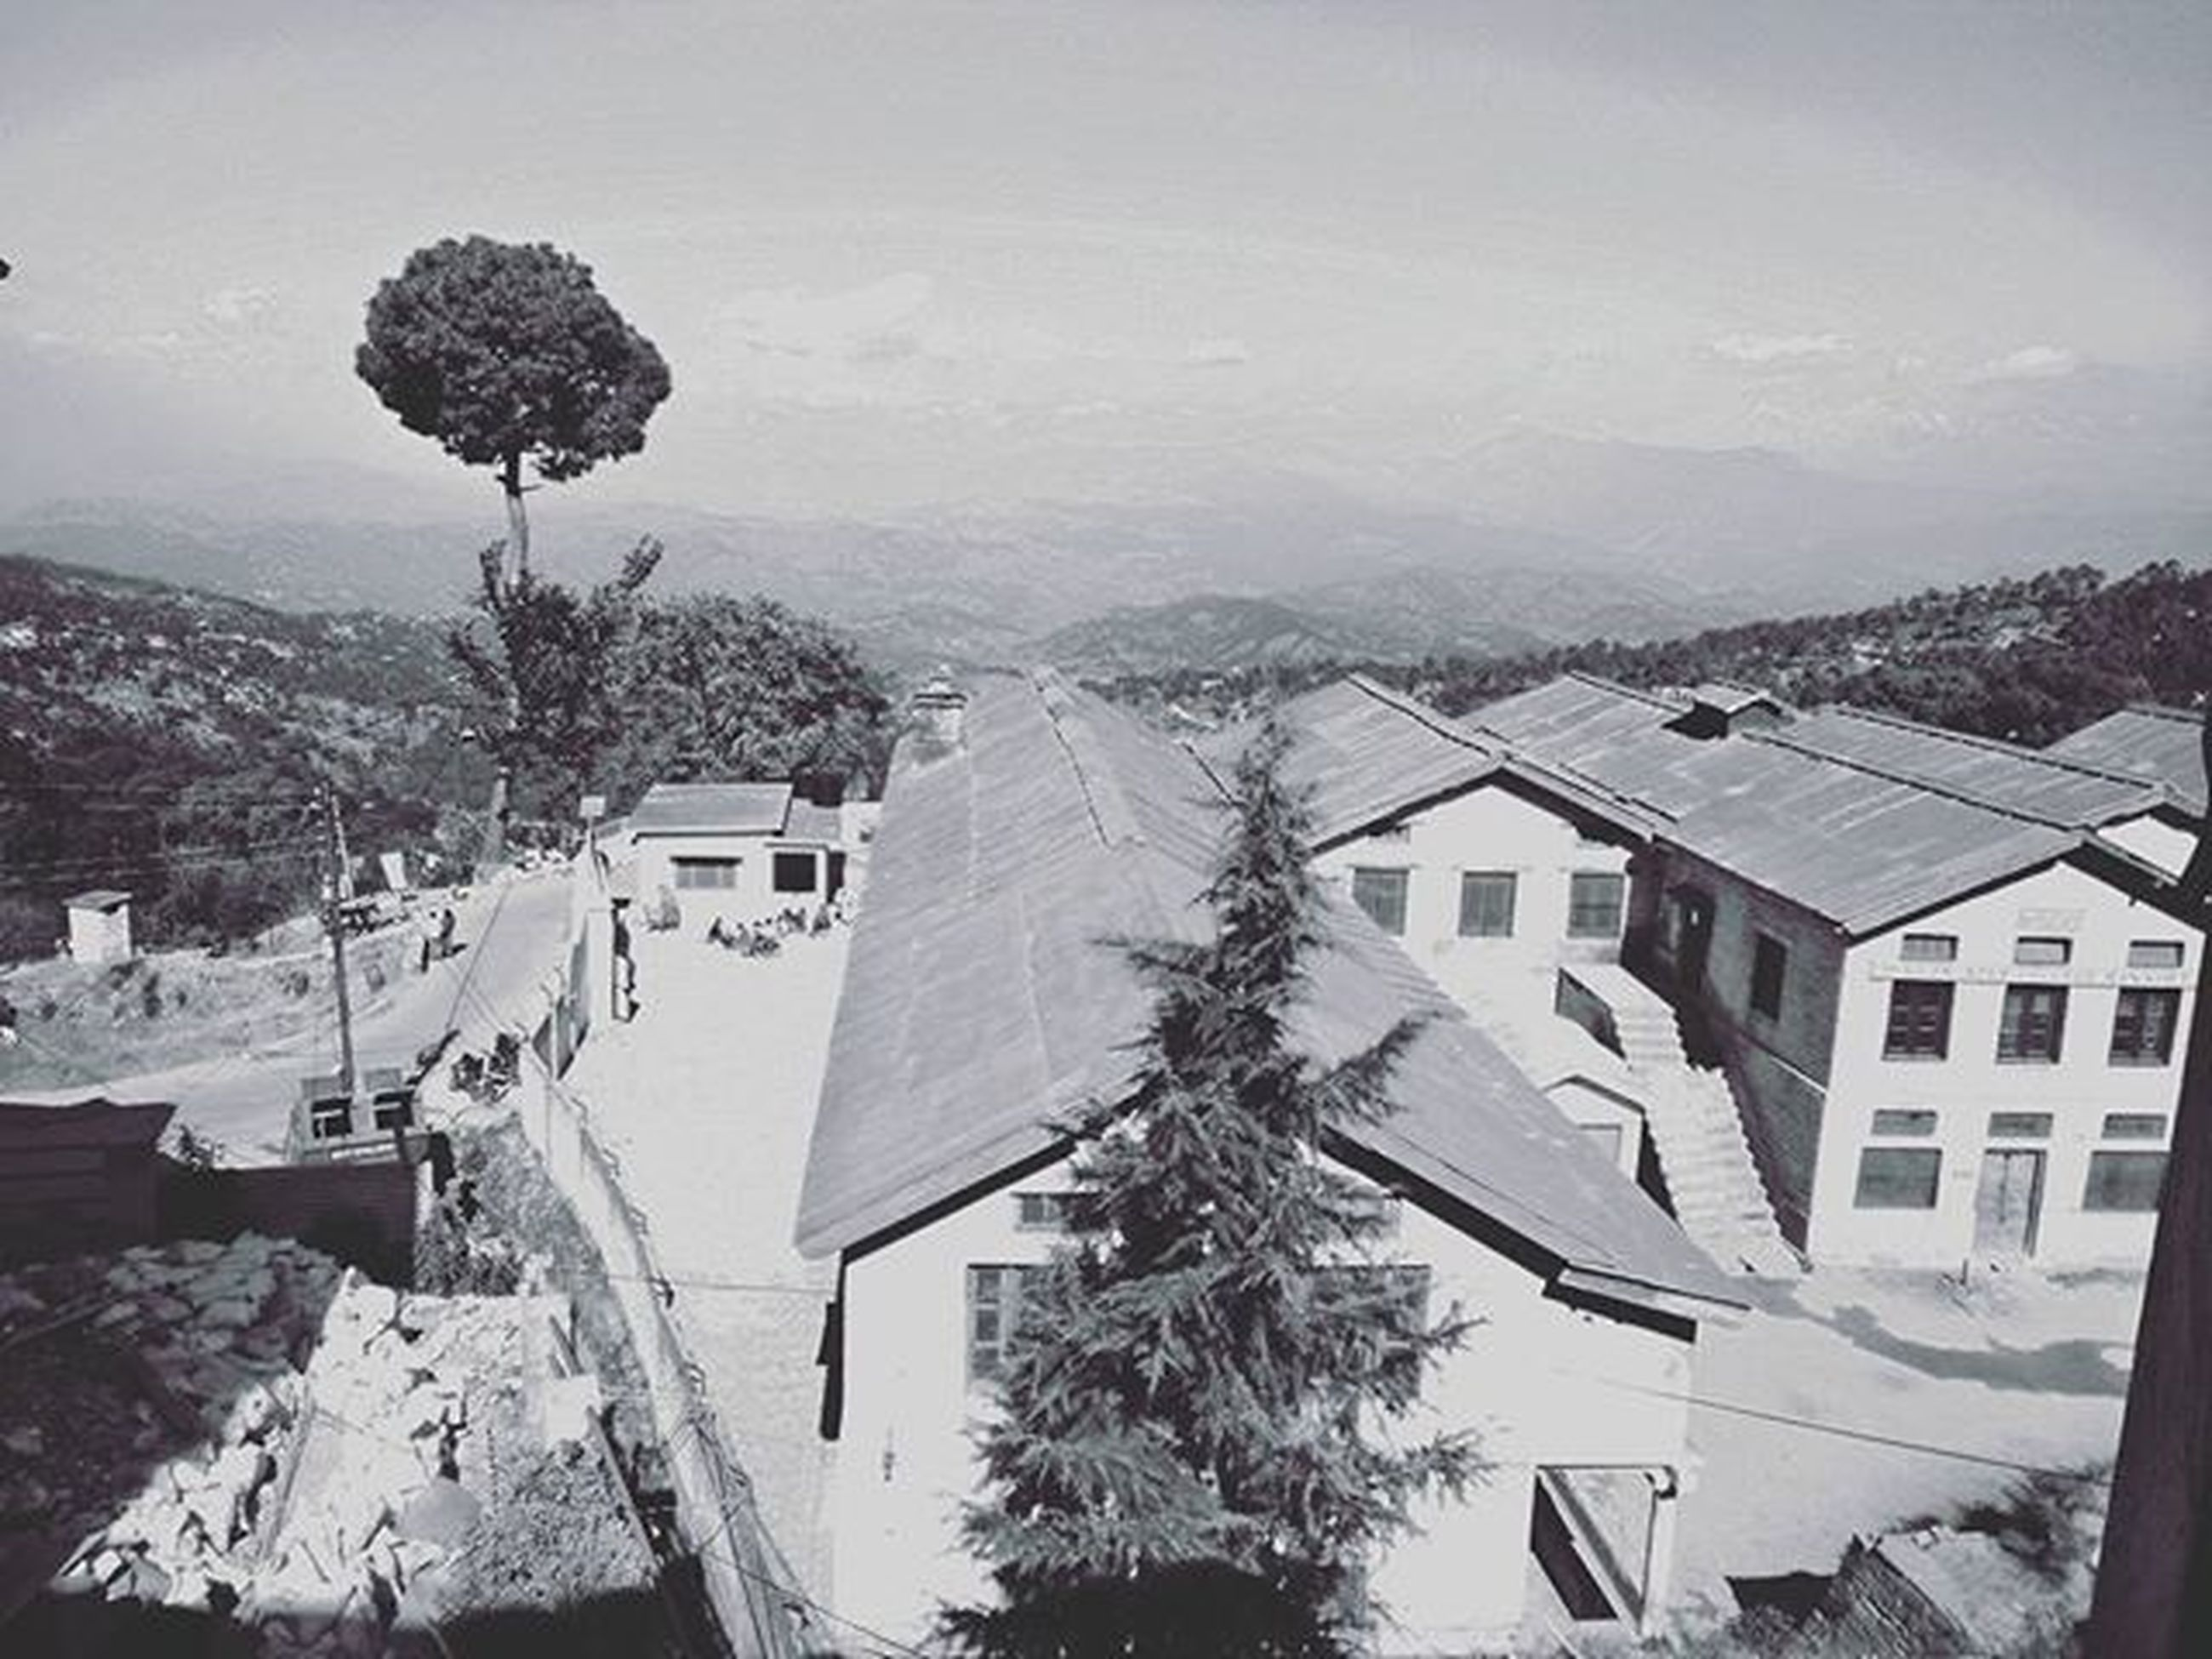 snow, winter, building exterior, cold temperature, architecture, house, built structure, residential structure, season, mountain, tree, residential building, high angle view, sky, weather, town, roof, covering, landscape, nature